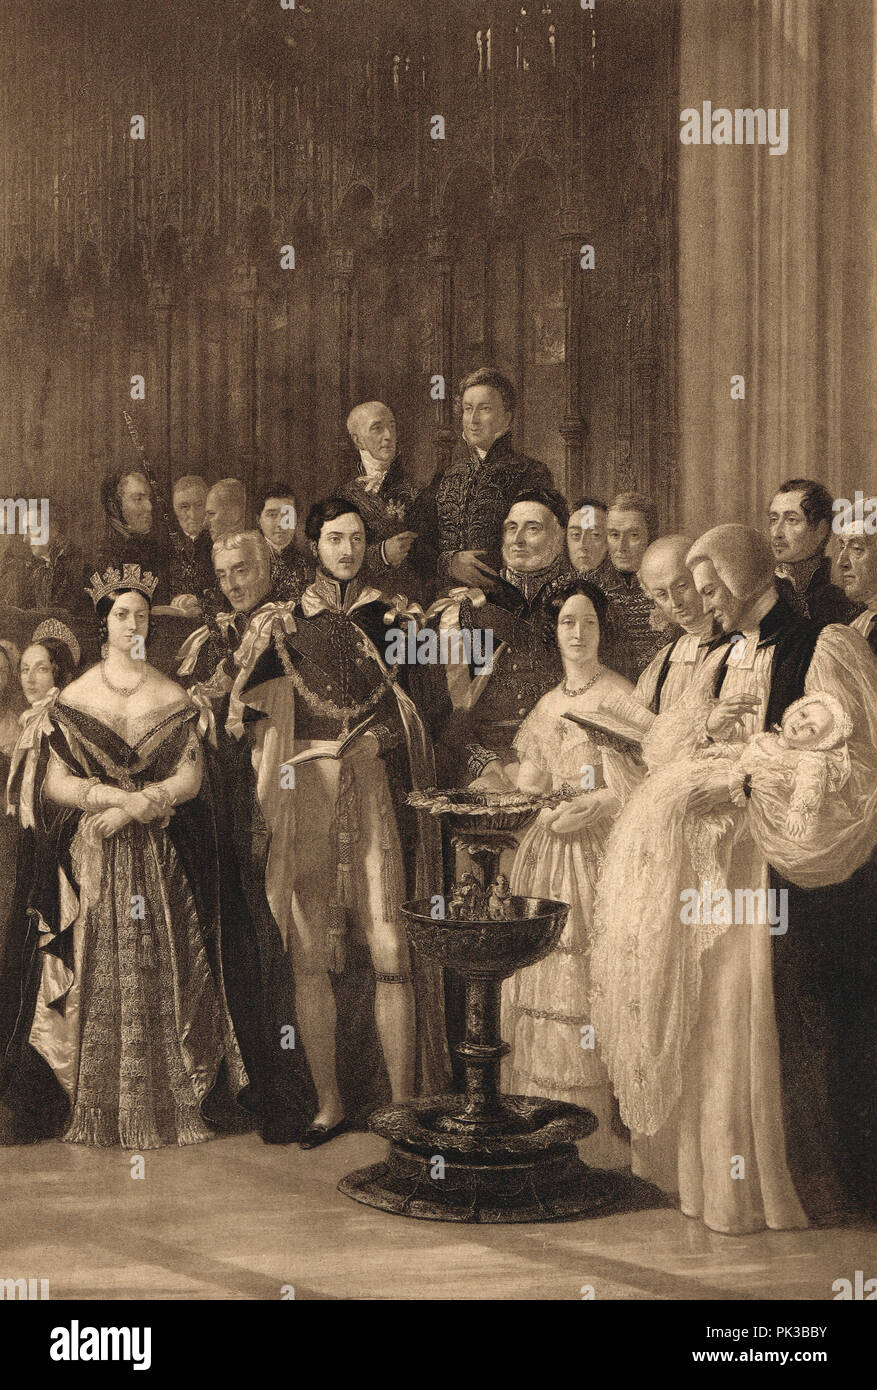 The baptism of Albert Edward, Prince of Wales (The future King Edward VII) at St George's Chapel, Windsor, Berks, England, 25 January 1842 - Stock Image